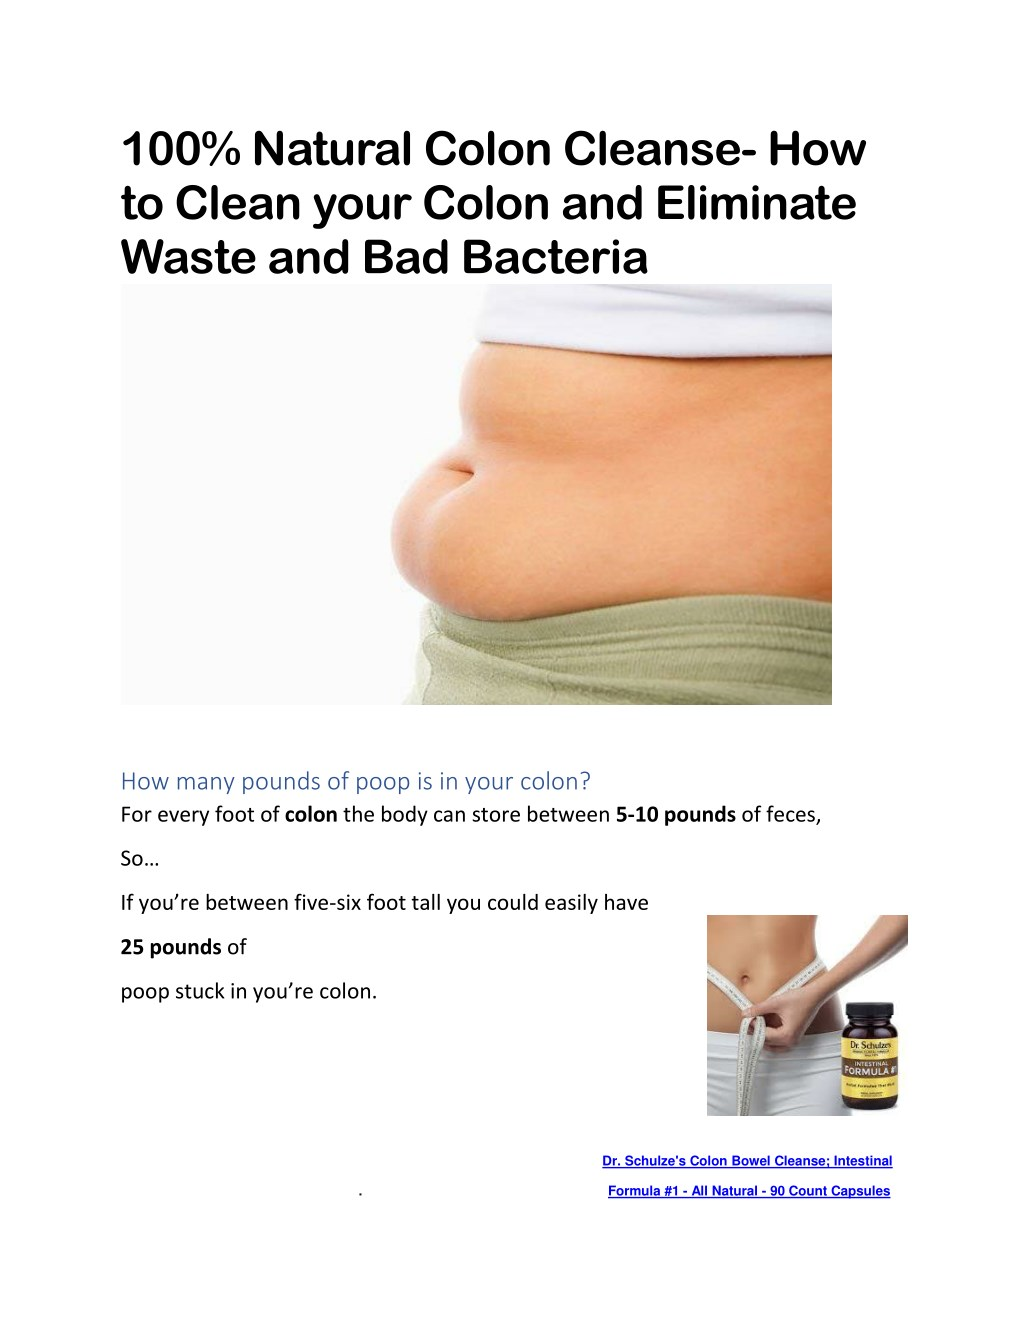 Ppt Colon Cleanse Powerpoint Presentation Free Download Id 7882410